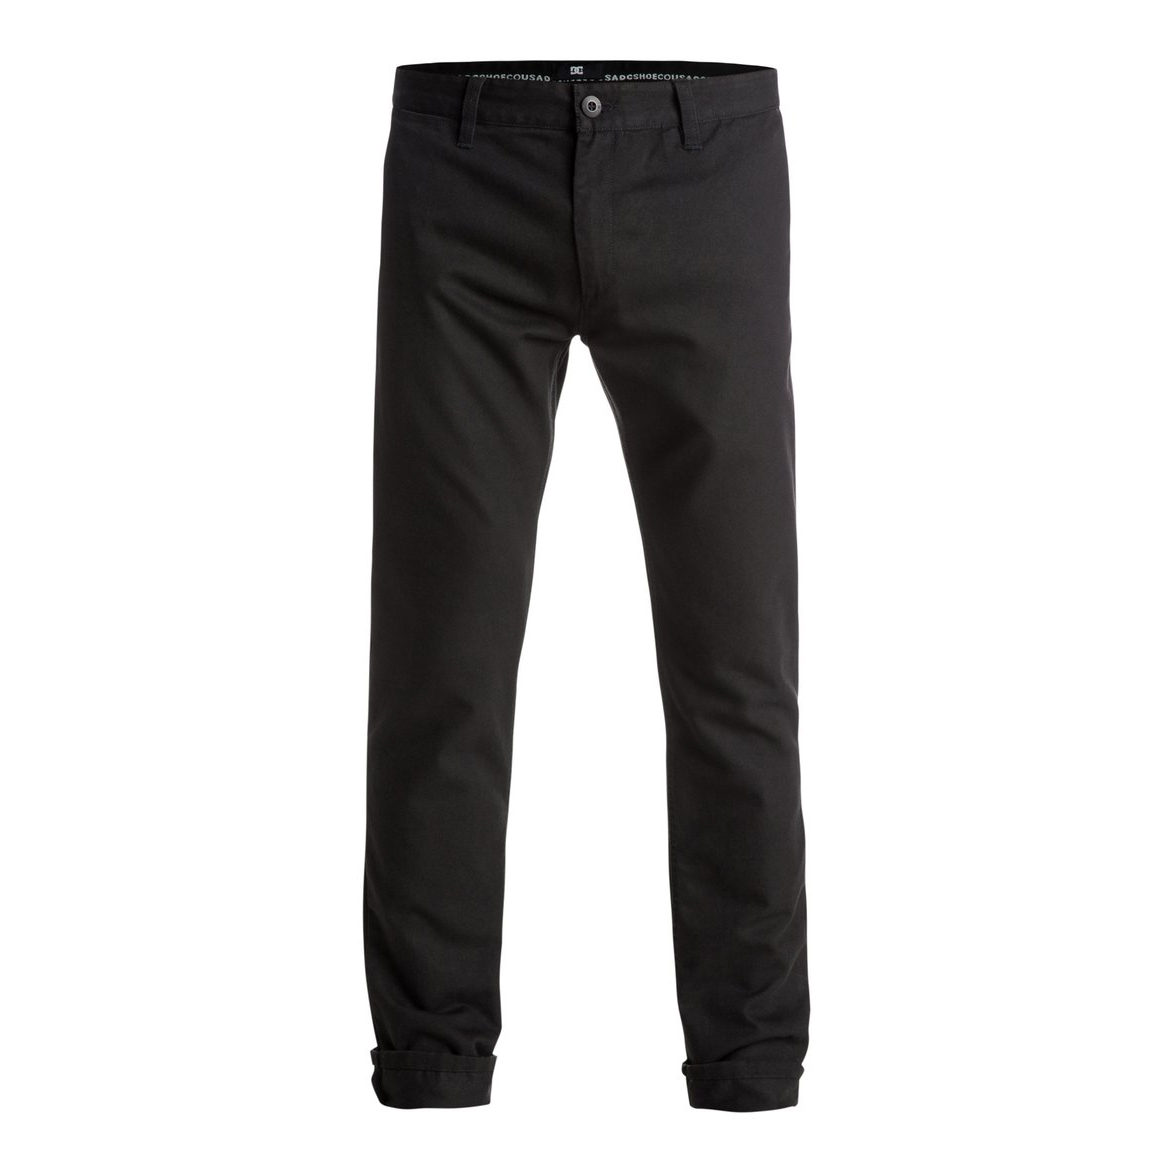 DC Skinny Slim Mens Chino Pants